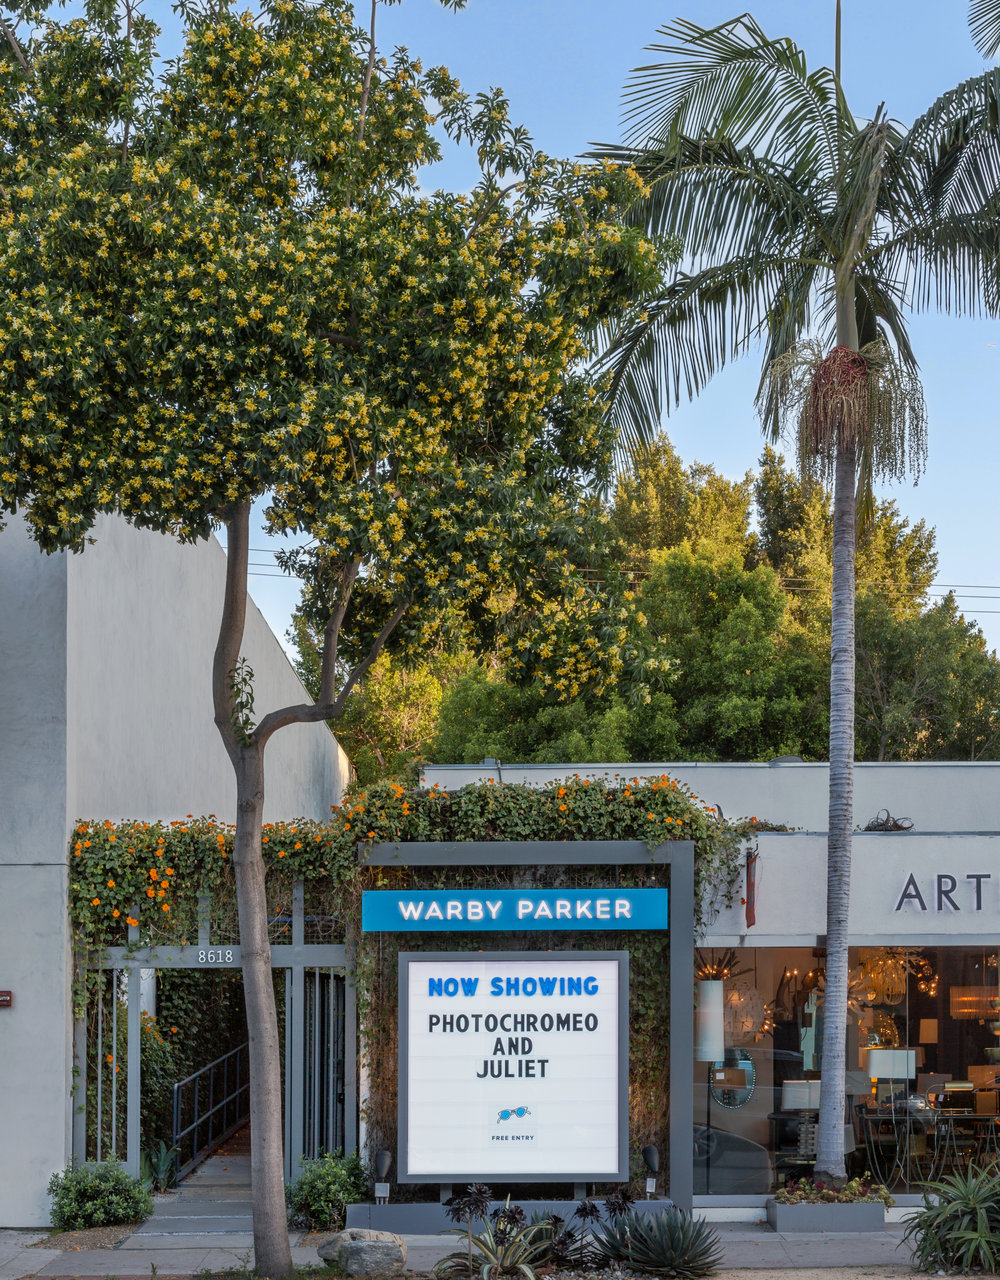 The Chic Establishment Gives a Unique Take on Hollywood! Courtesy Photo